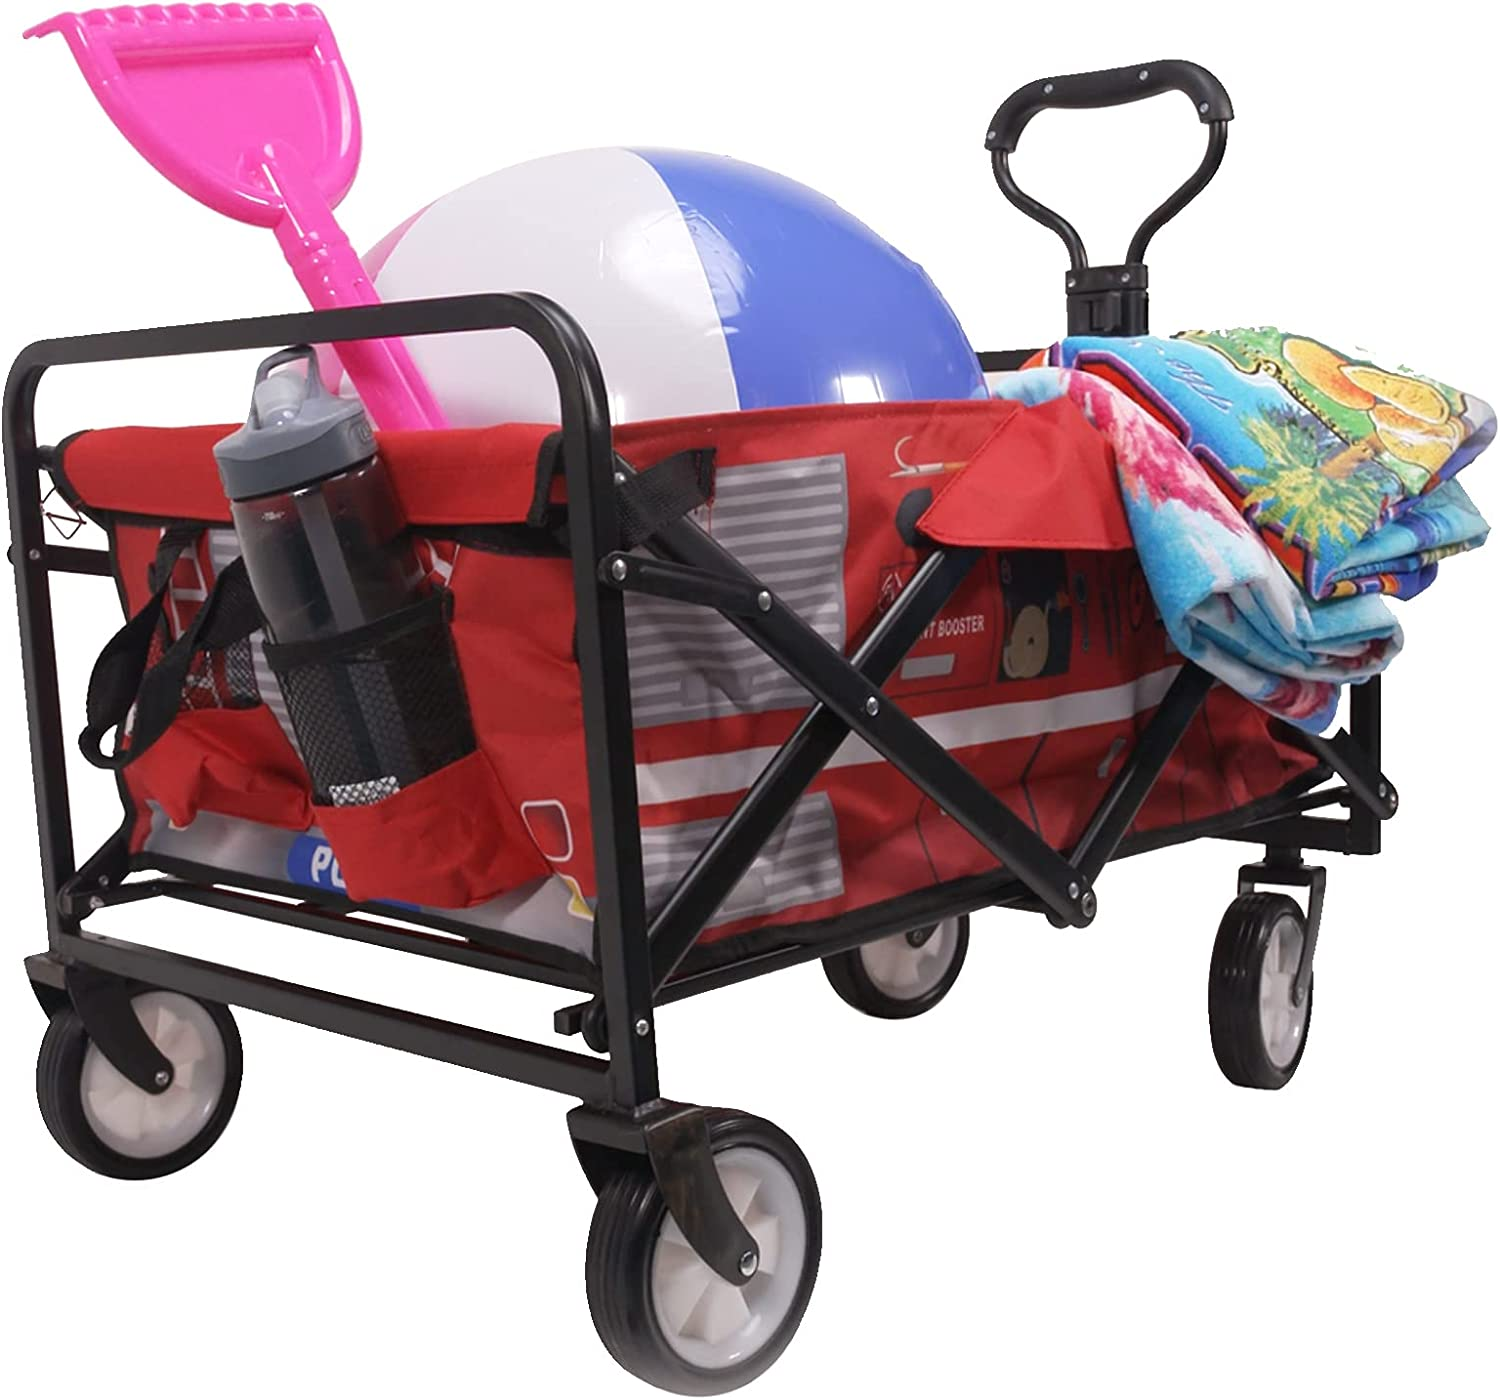 Reliant Outdoor Heavy Duty Collapsible NEW Beach Adj Wagon Daily bargain sale with Cart